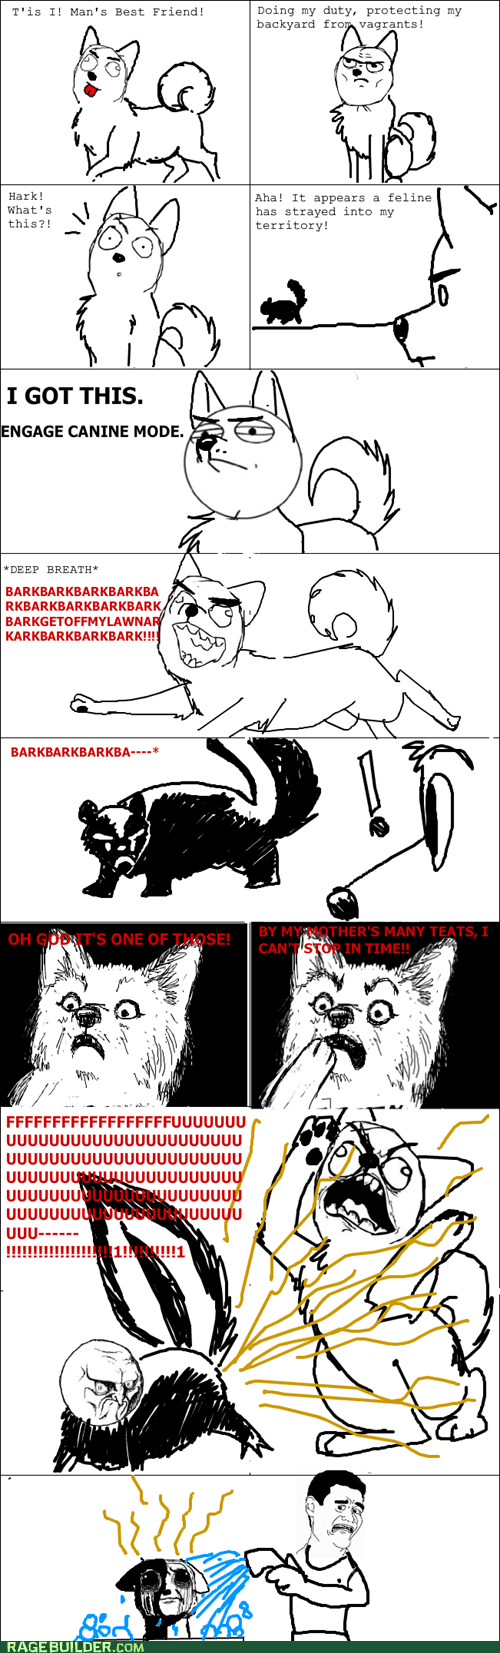 animals attack bark Cats dogs never again Rage Comics - 5777666816